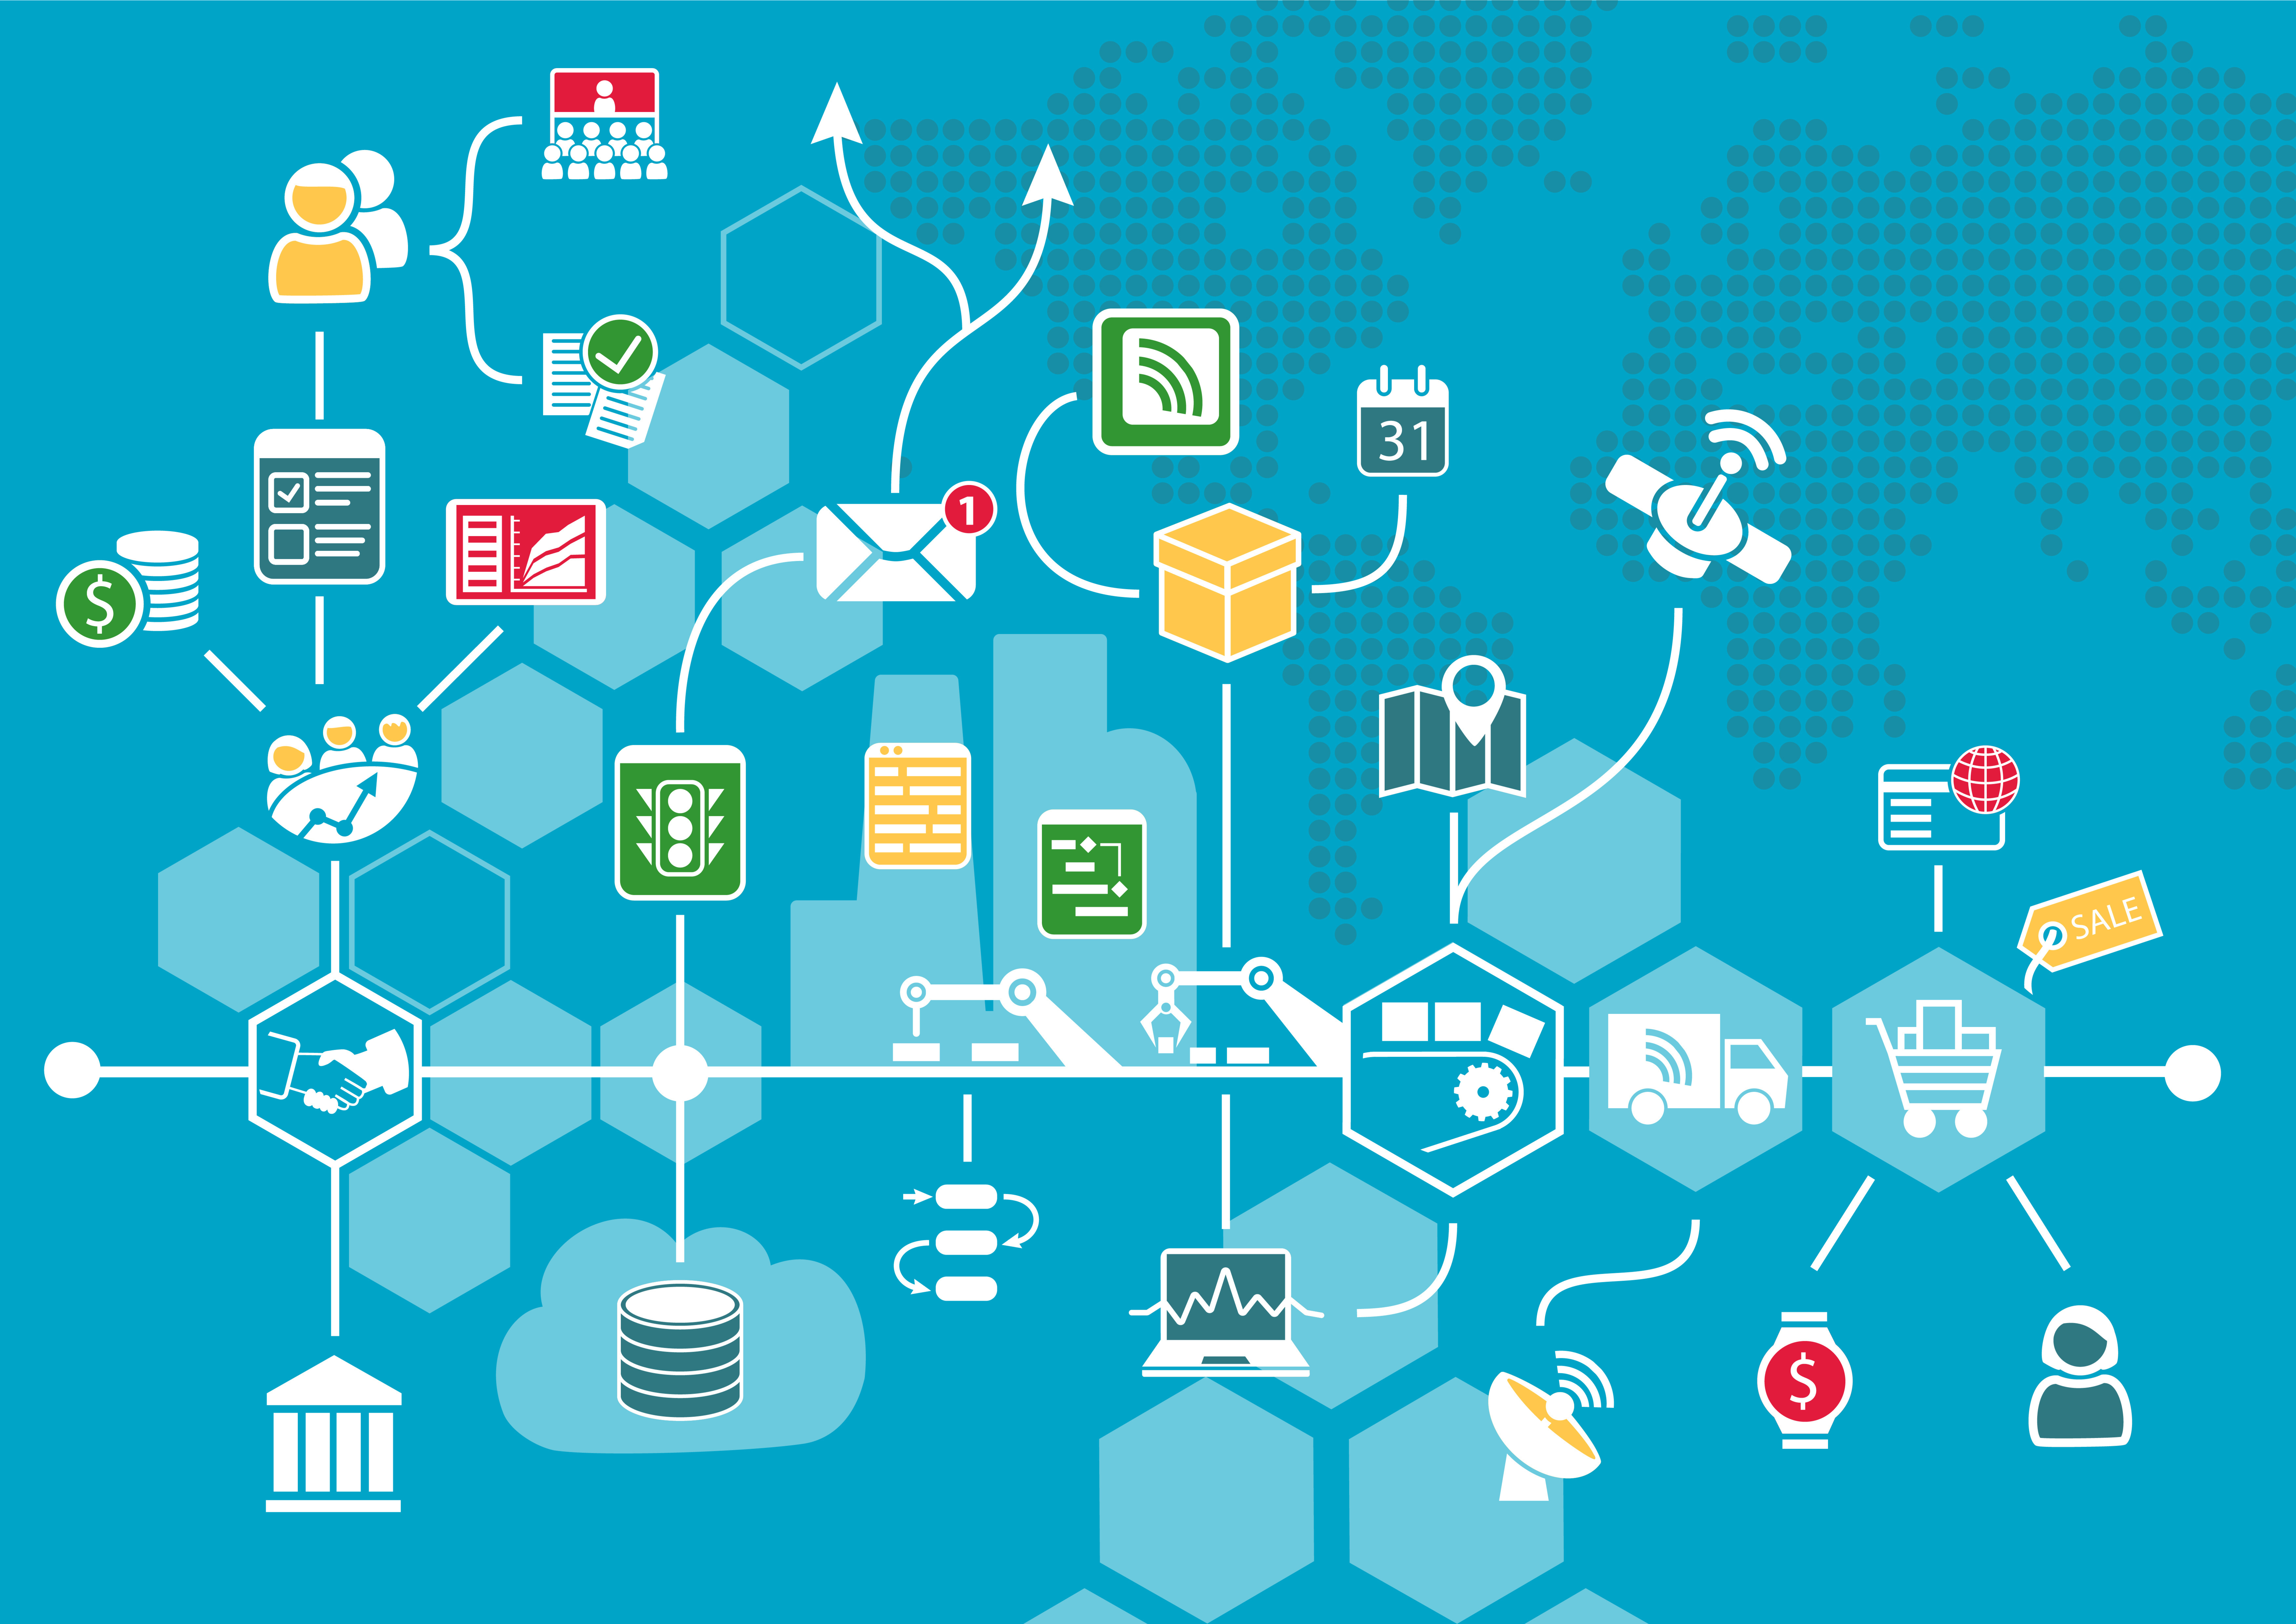 graphic representation of the Internet of Things showing how connected and necessary the Internet is for business